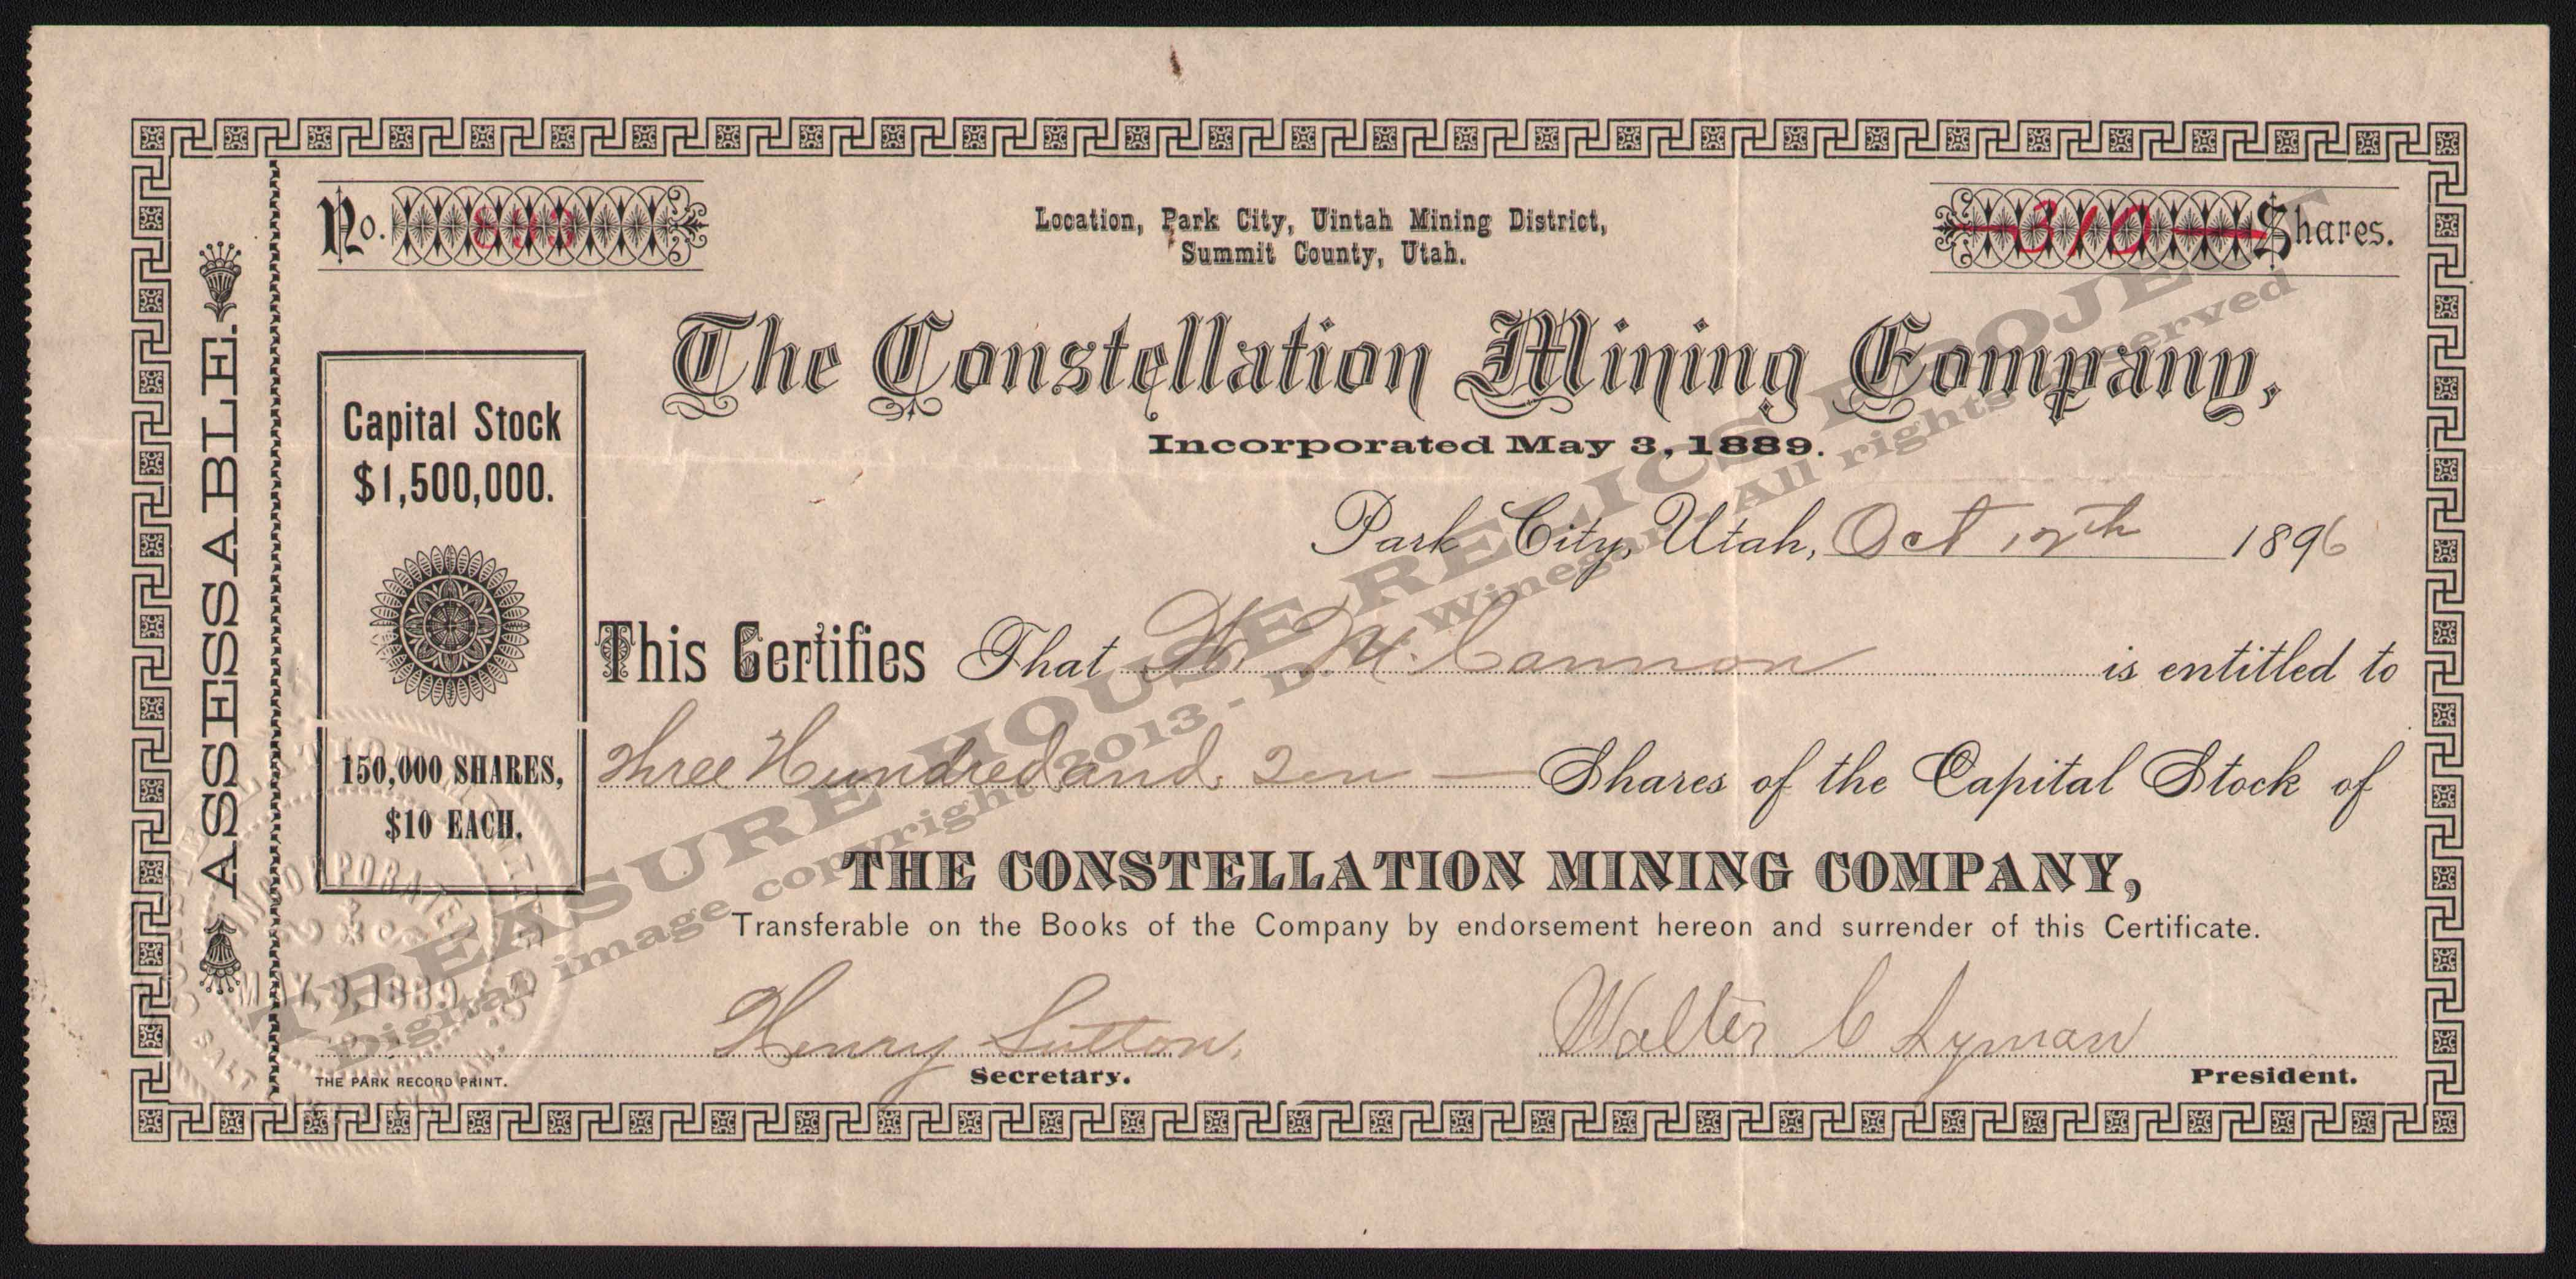 LETTERHEAD/STOCK_CONSTELLATION_MINING_COMPANY_PARK_CITY_UTAH_1896_10_27_DSW_323_400_CROP_EMBOSS.jpg